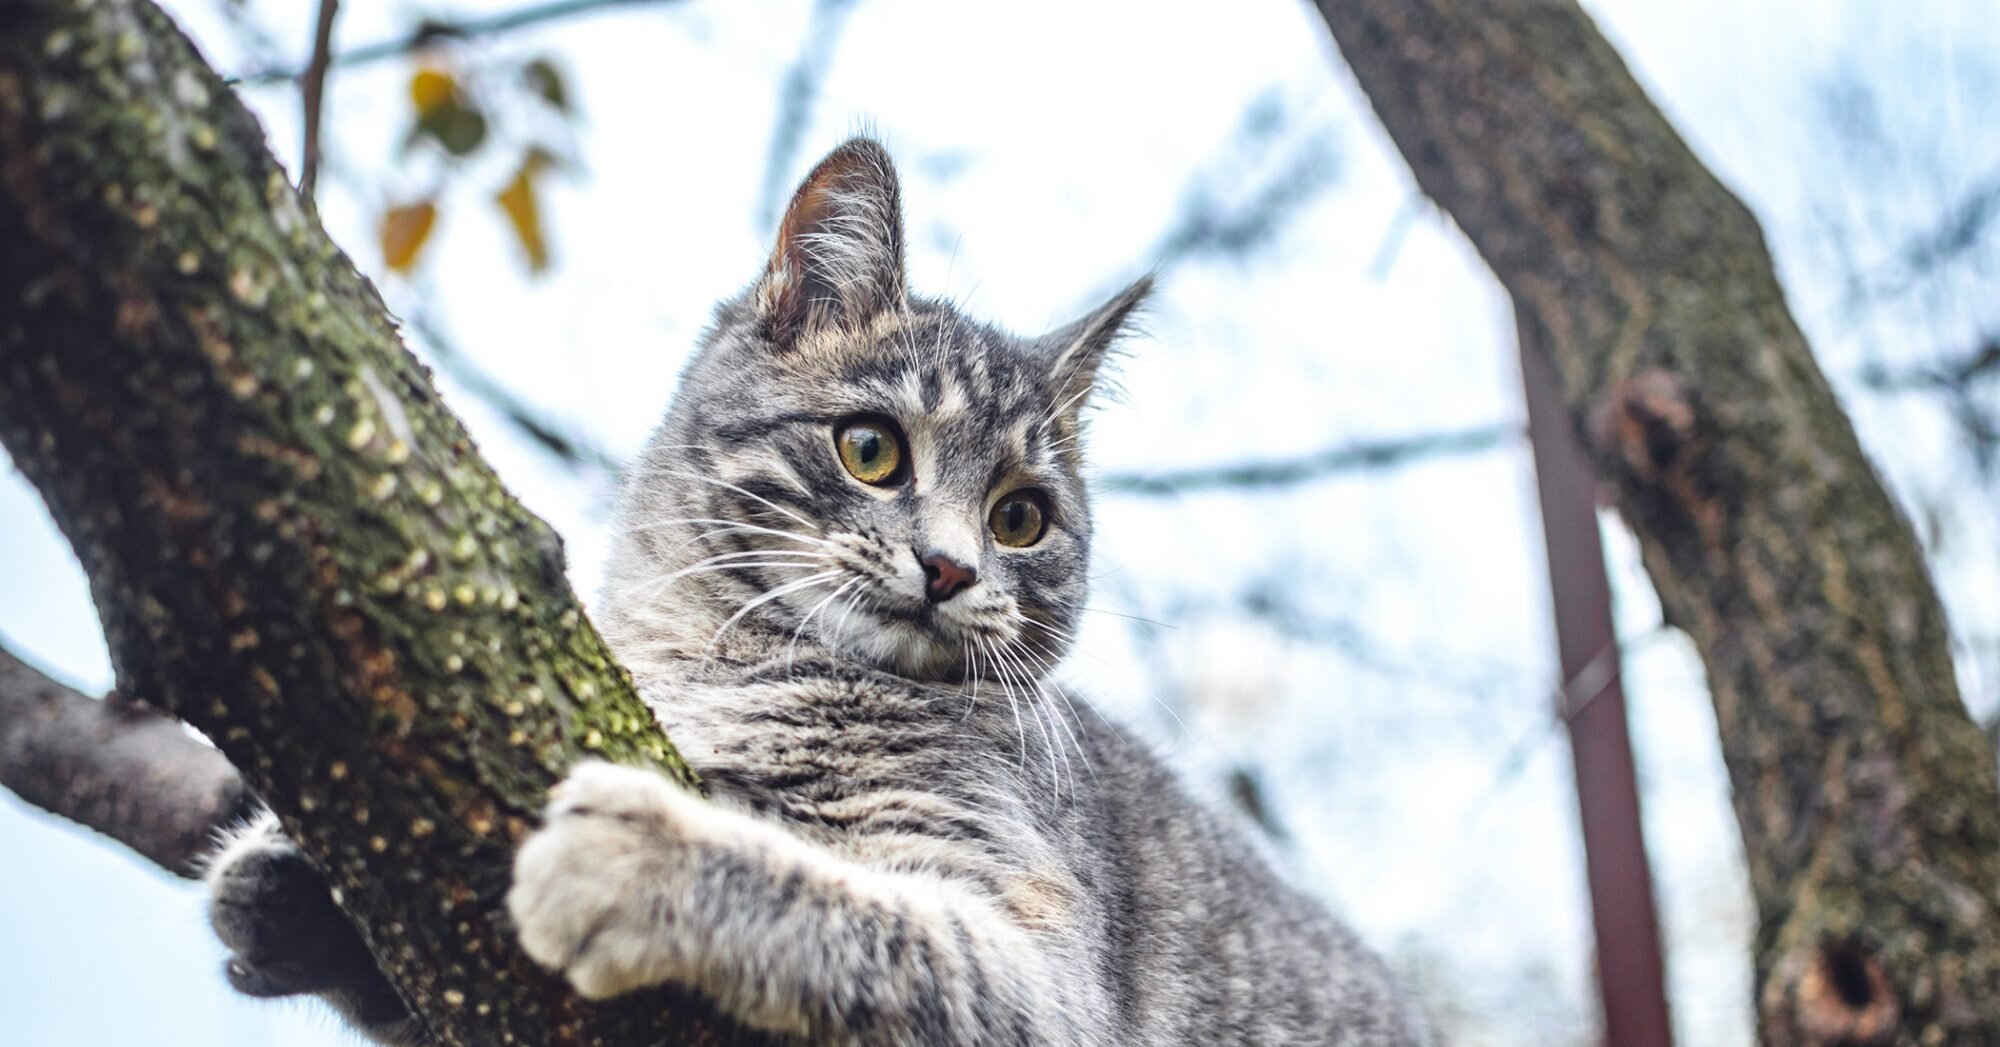 Man Tries to Rescue Cat from Tree, Also Gets Stuck